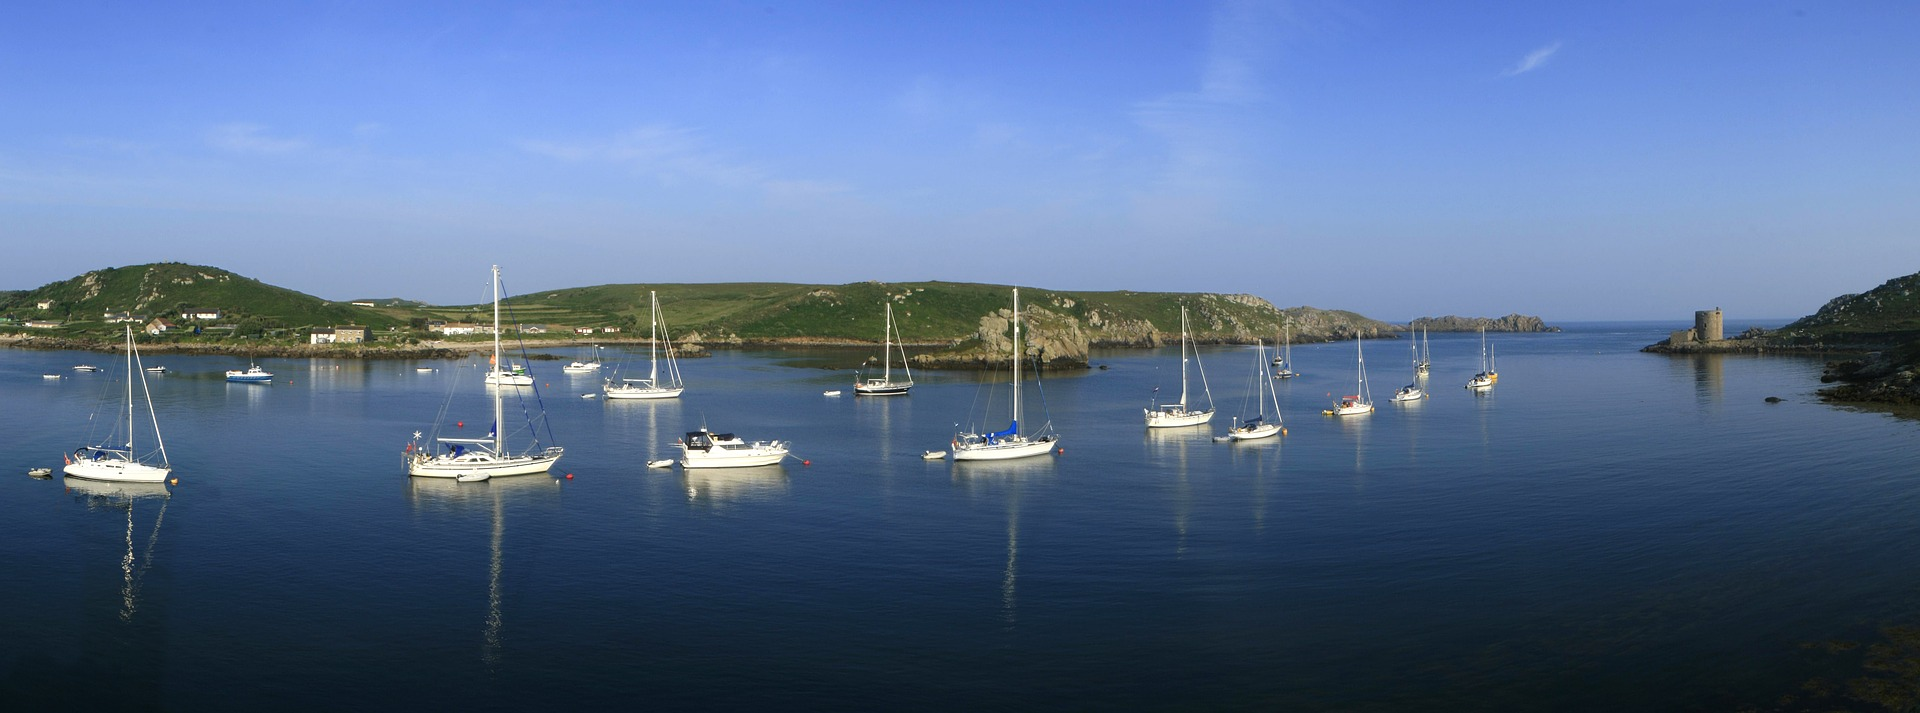 Walking destinations in scilly isles